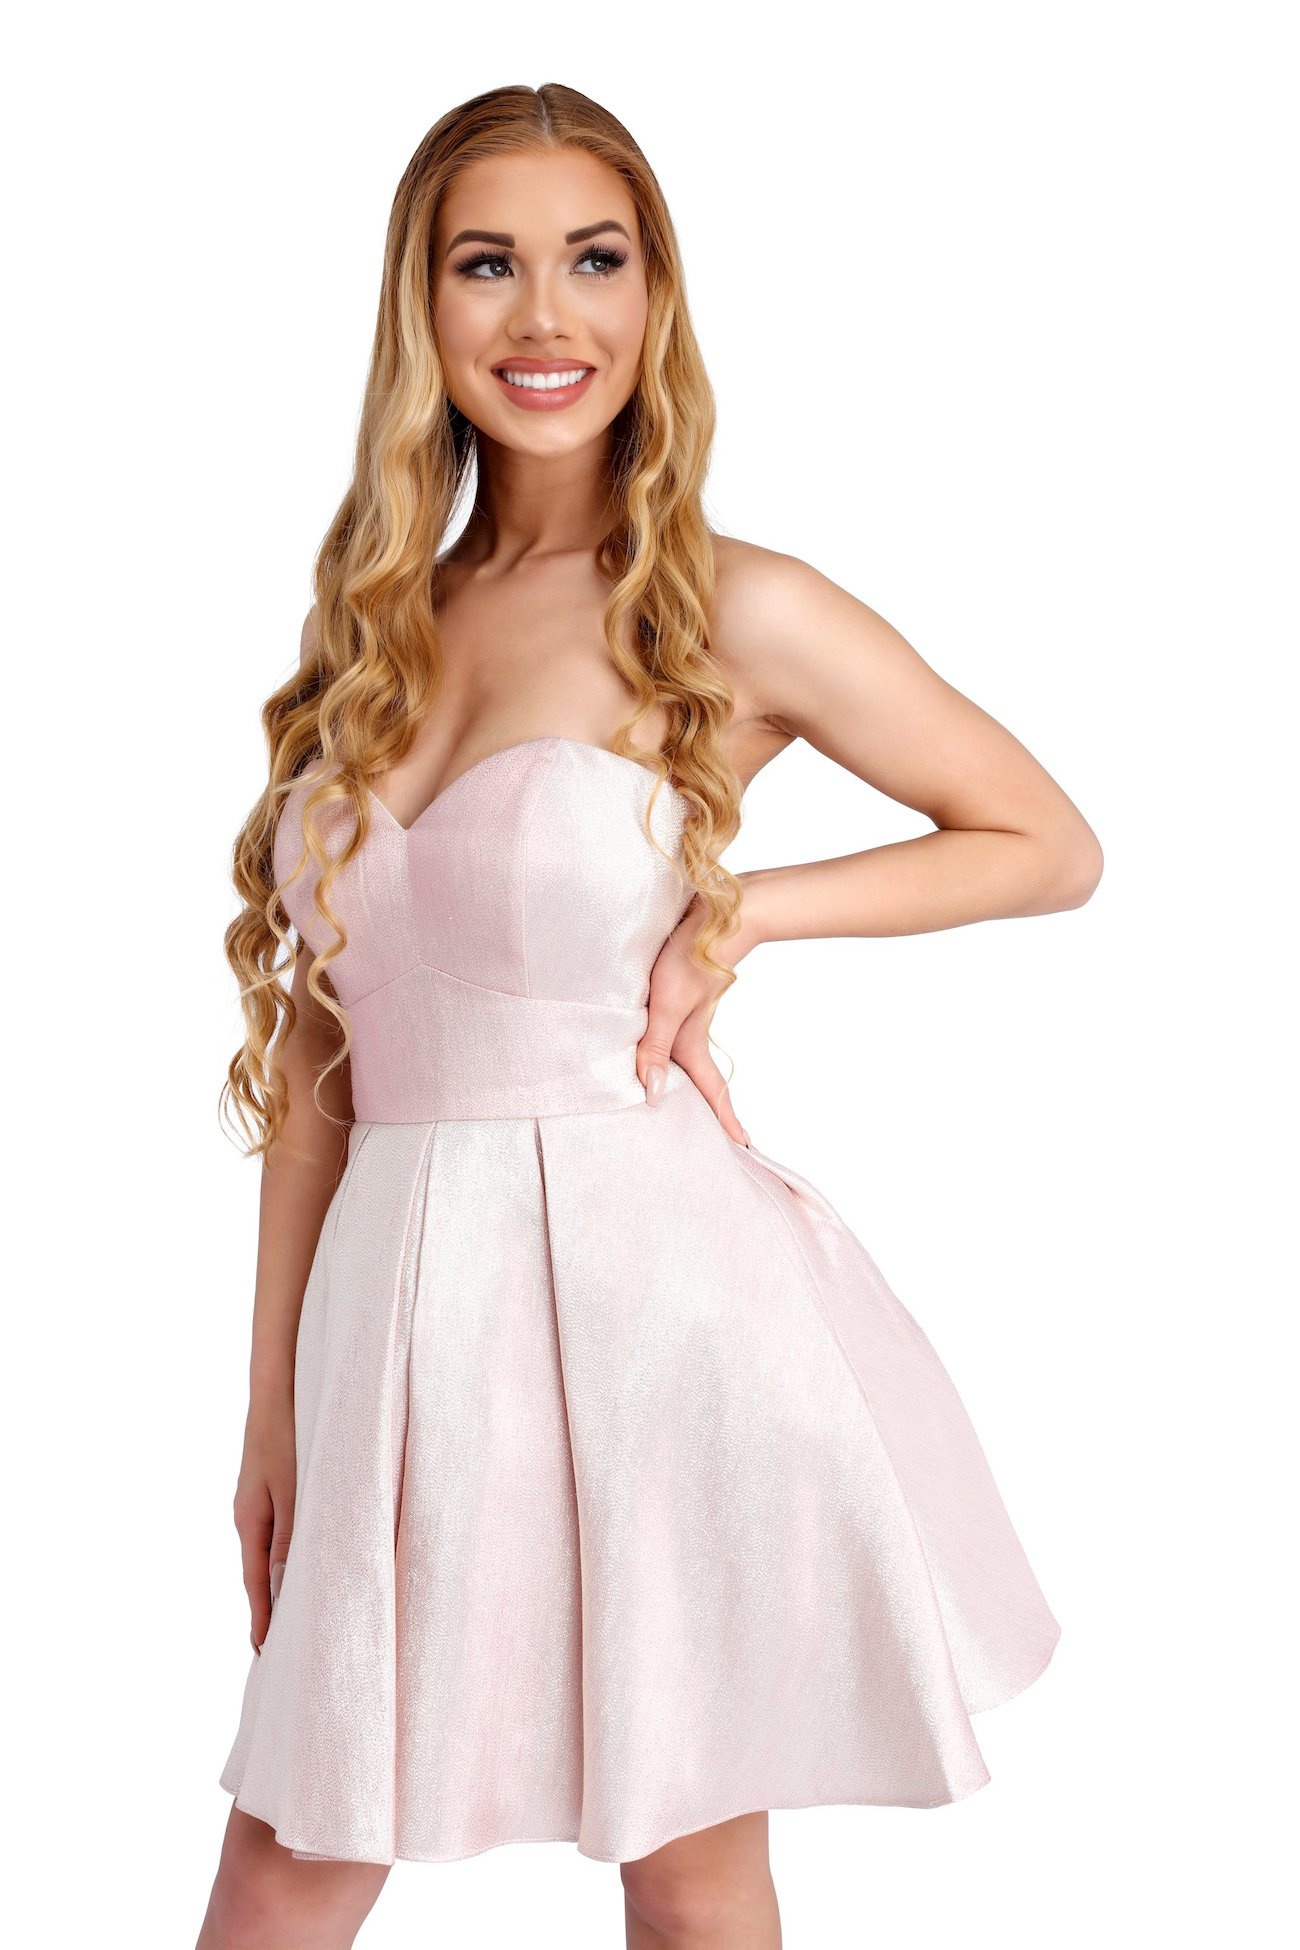 Style 65006 Vienna Light Pink Size 2 Strapless Mini Cocktail Dress on Queenly